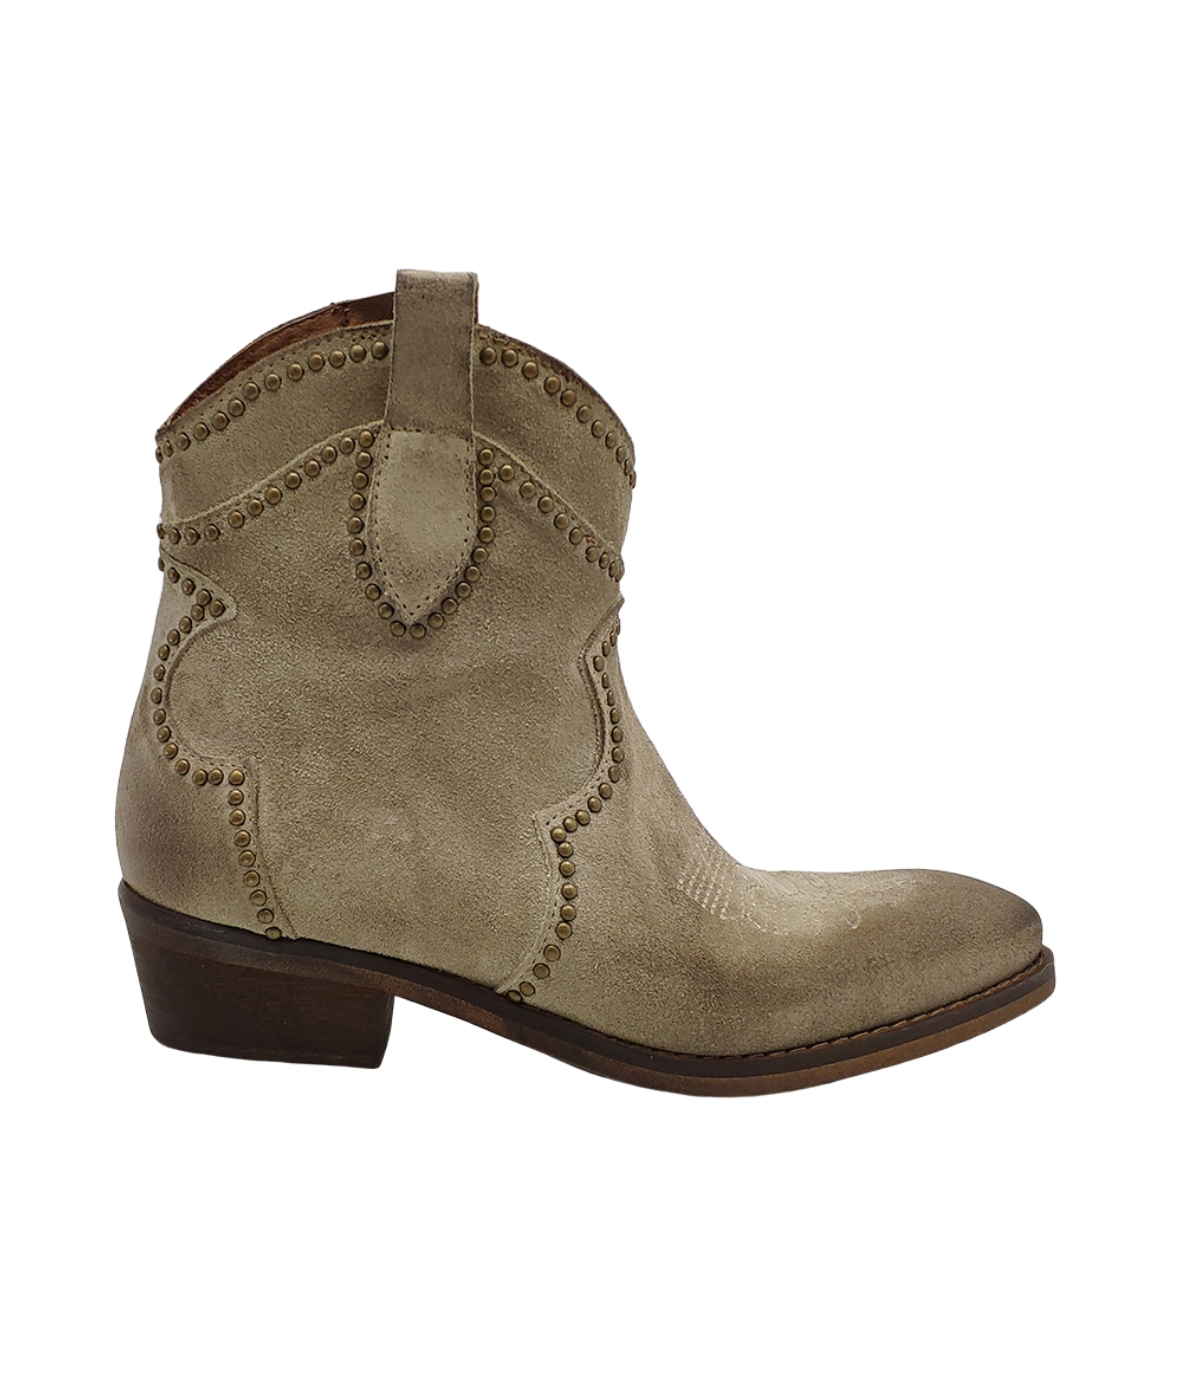 Women's Texan Ankle Boots Studs Zoe | Ankle Boots | OLD 01CORDA